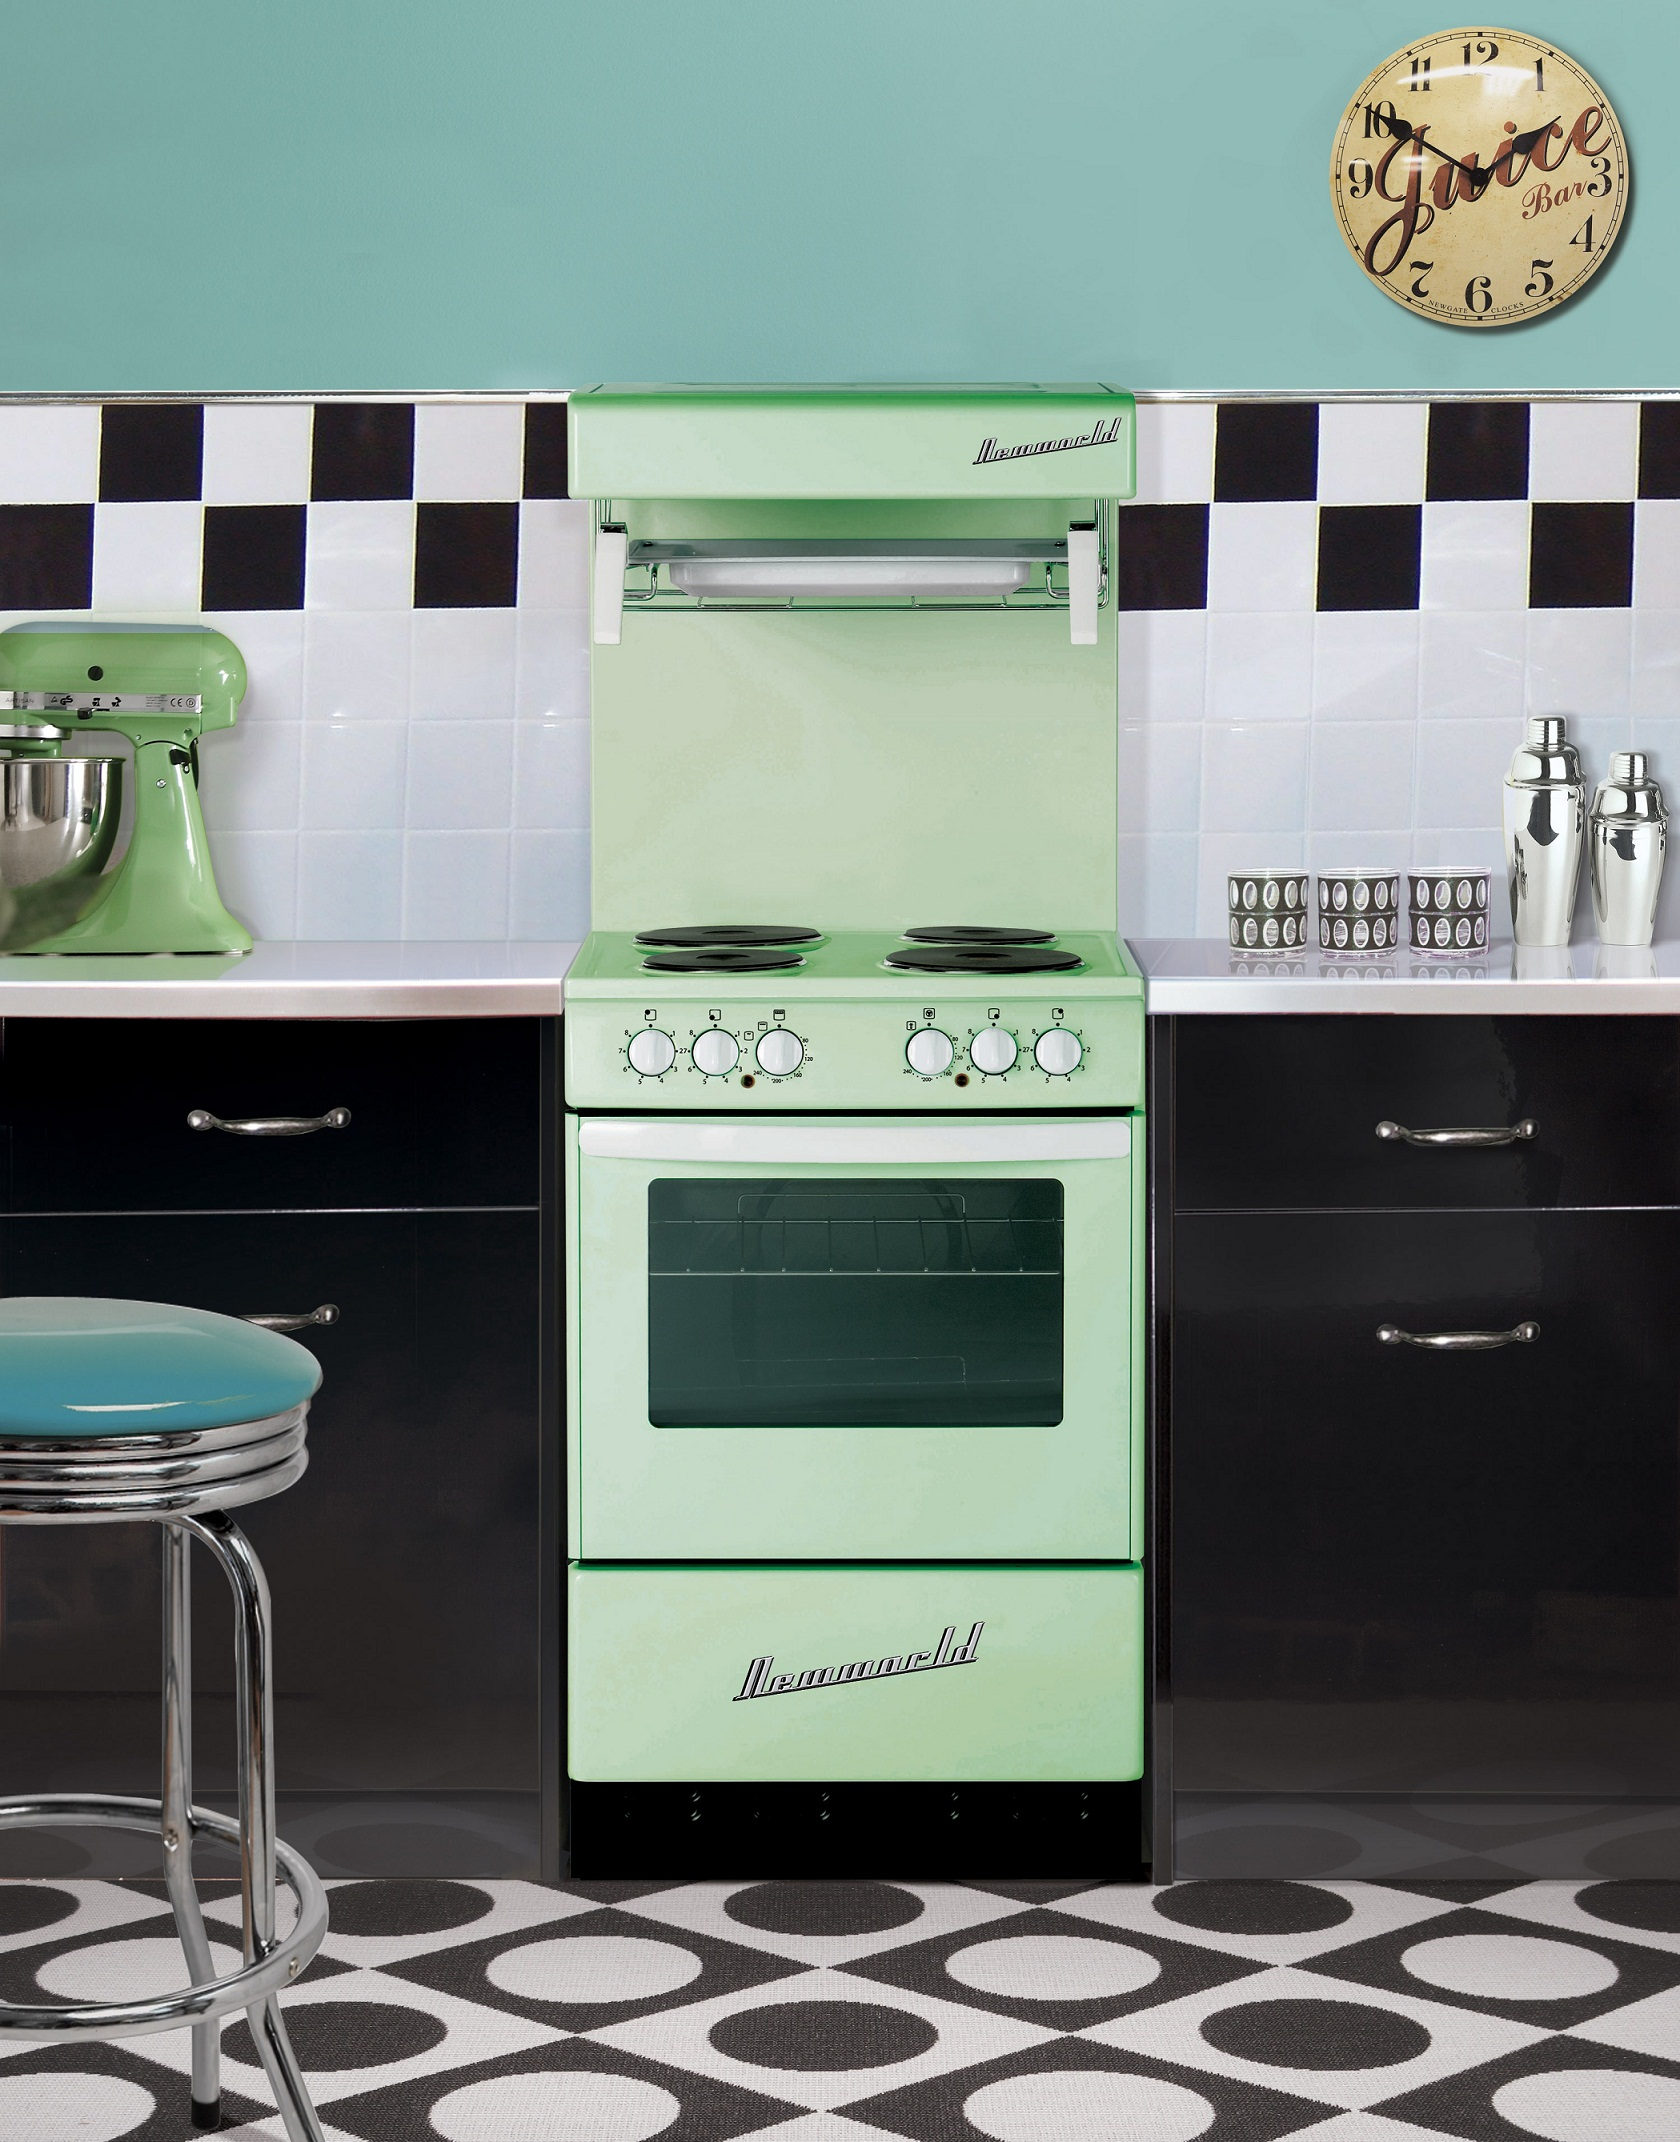 Vintage Style Kitchen Rugs And Why I Didn T Go Actual: Invade Your Home Interior With Retro Style Appliance For